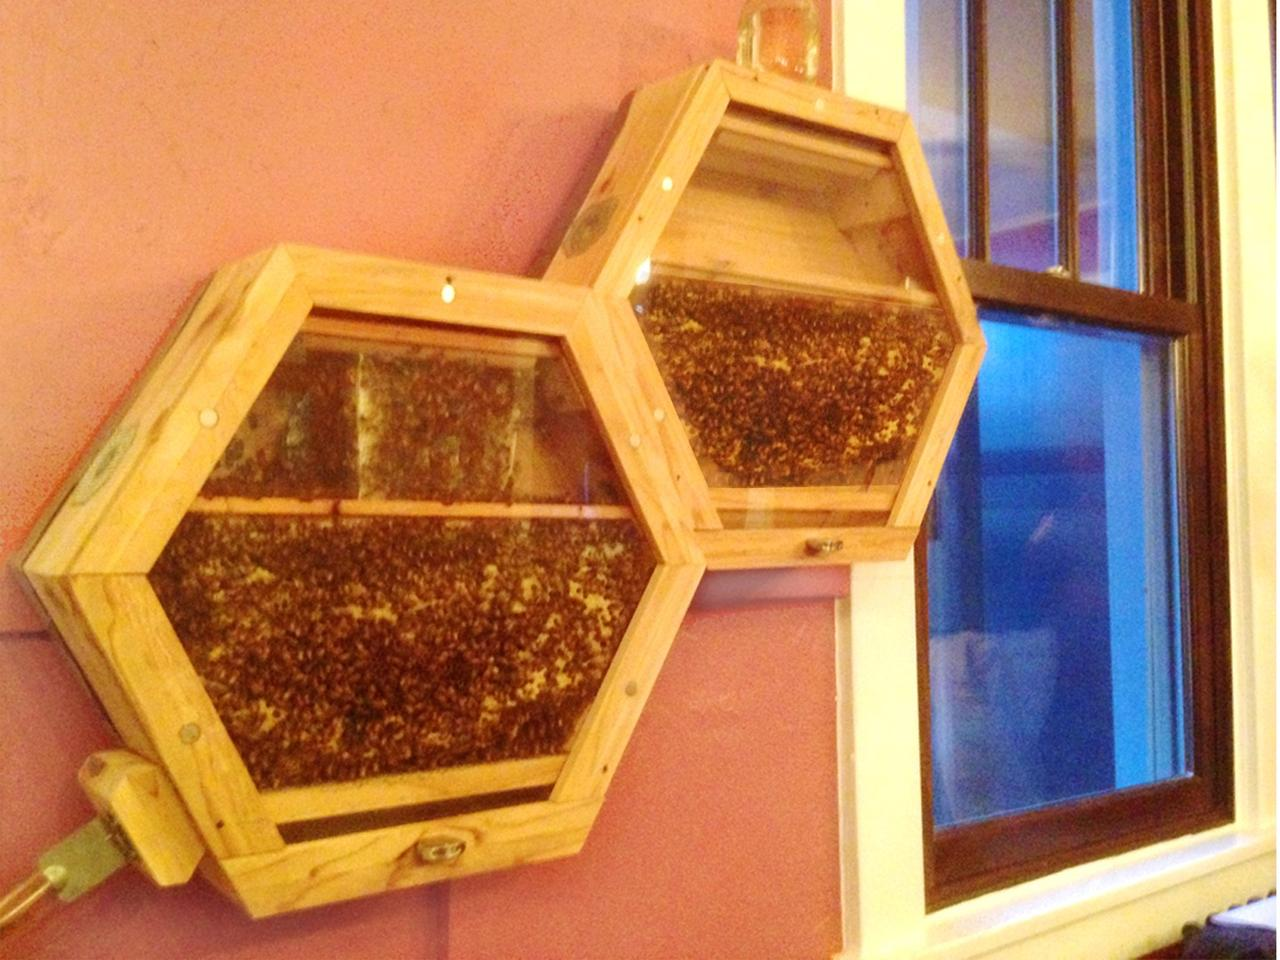 The BEEcosystem has been designed to be modular so that more hives can be added as the colony grows